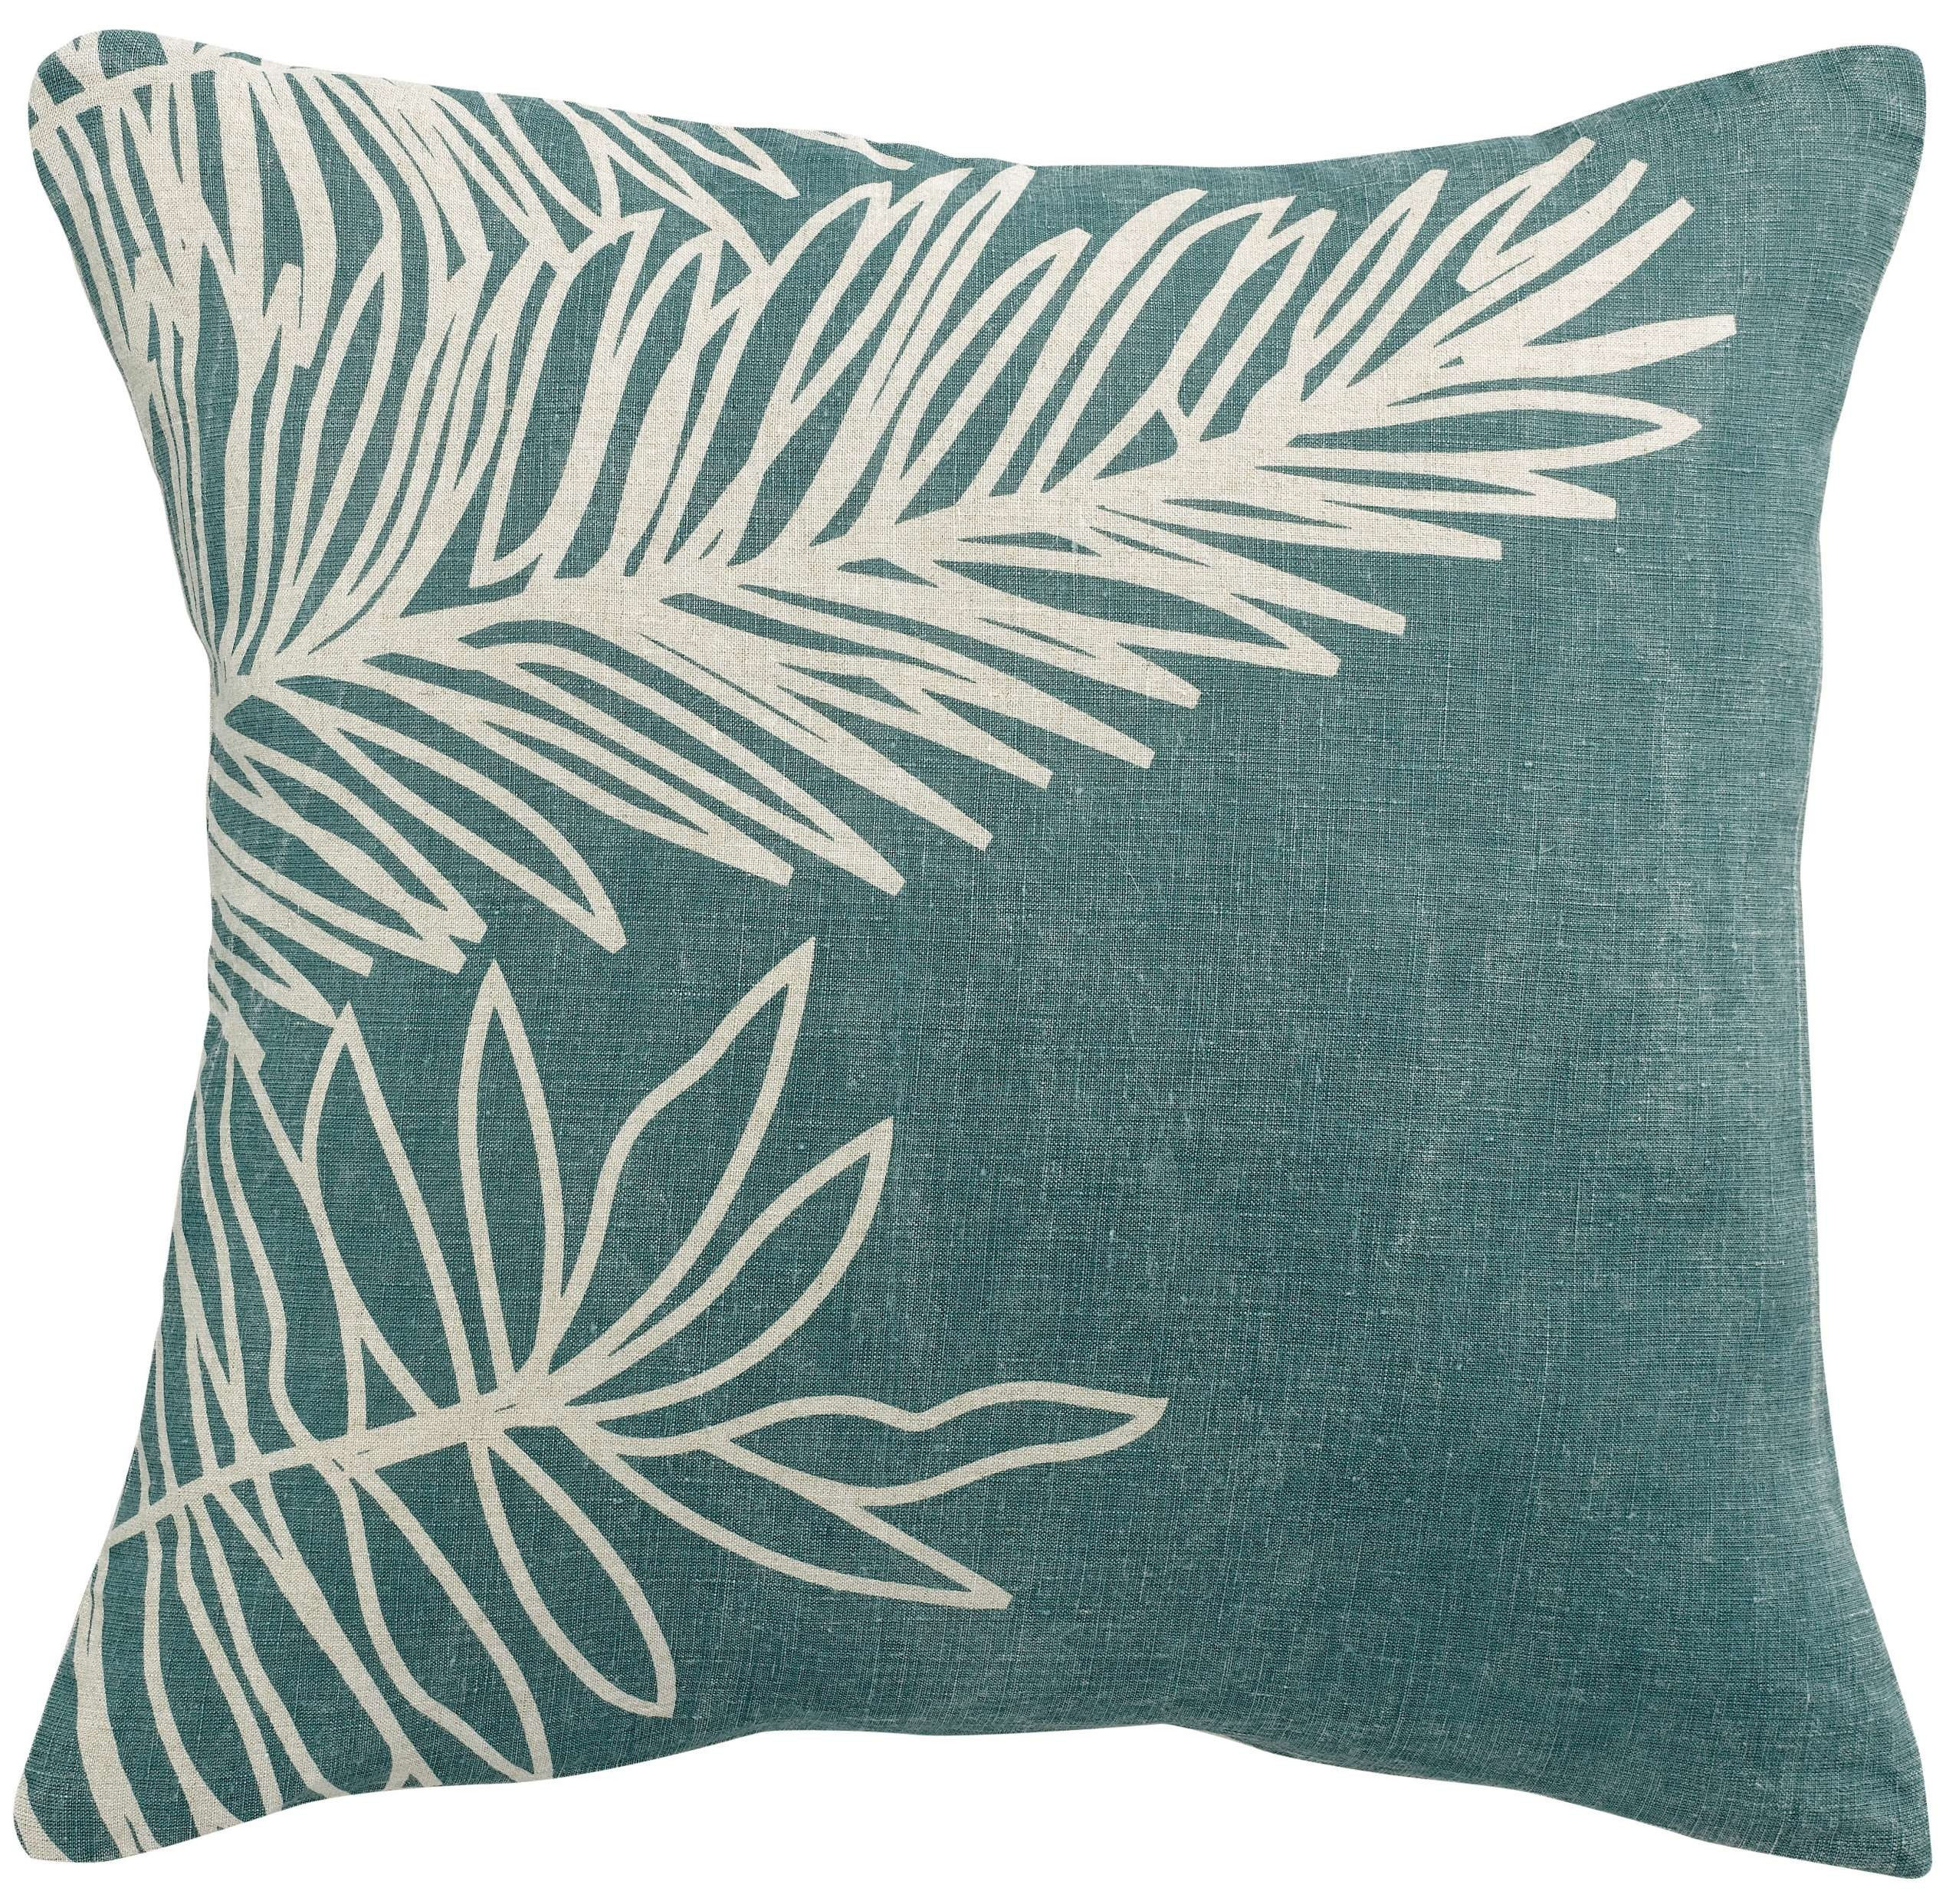 Vivaraise Cushion Zeff Palm Prusse